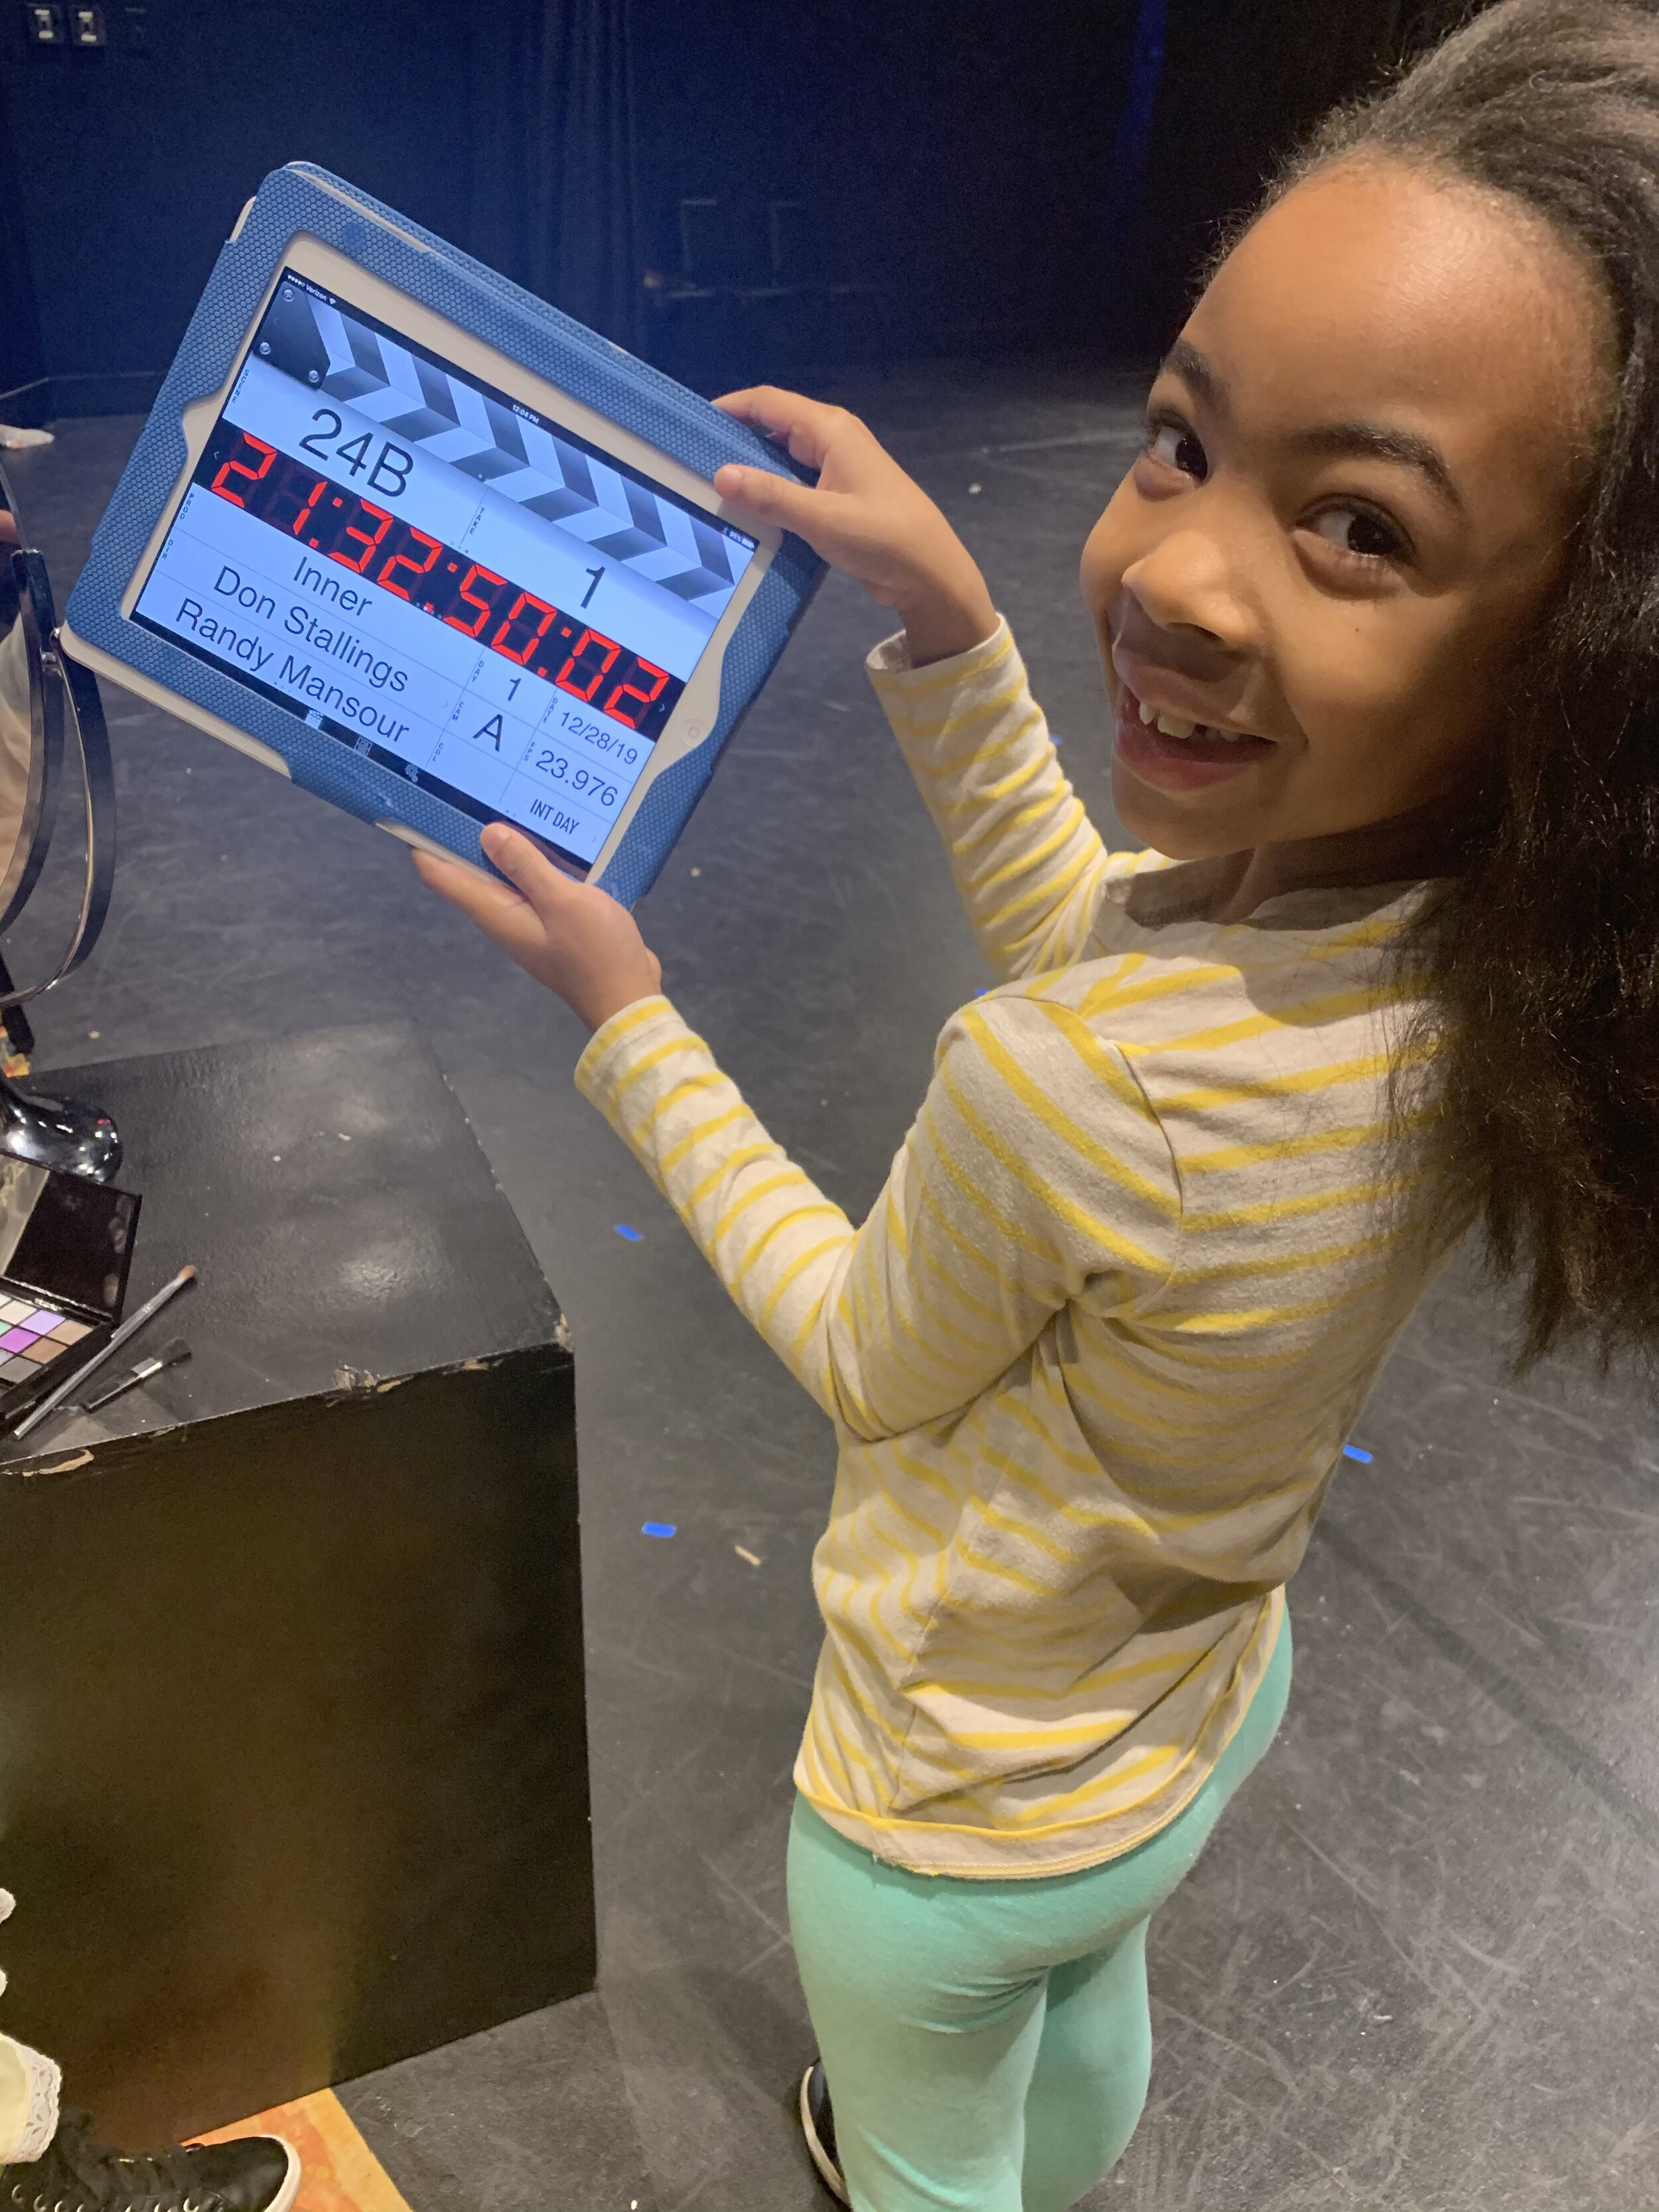 The Atlanta Workshop Players is - a Movie and Theatre Production Company; has developed a Film School Conservatory; a Professional Musical Theatre Training Program and conducts summer and winter Performing Arts Camps that attract students and teachers from 5 continents.